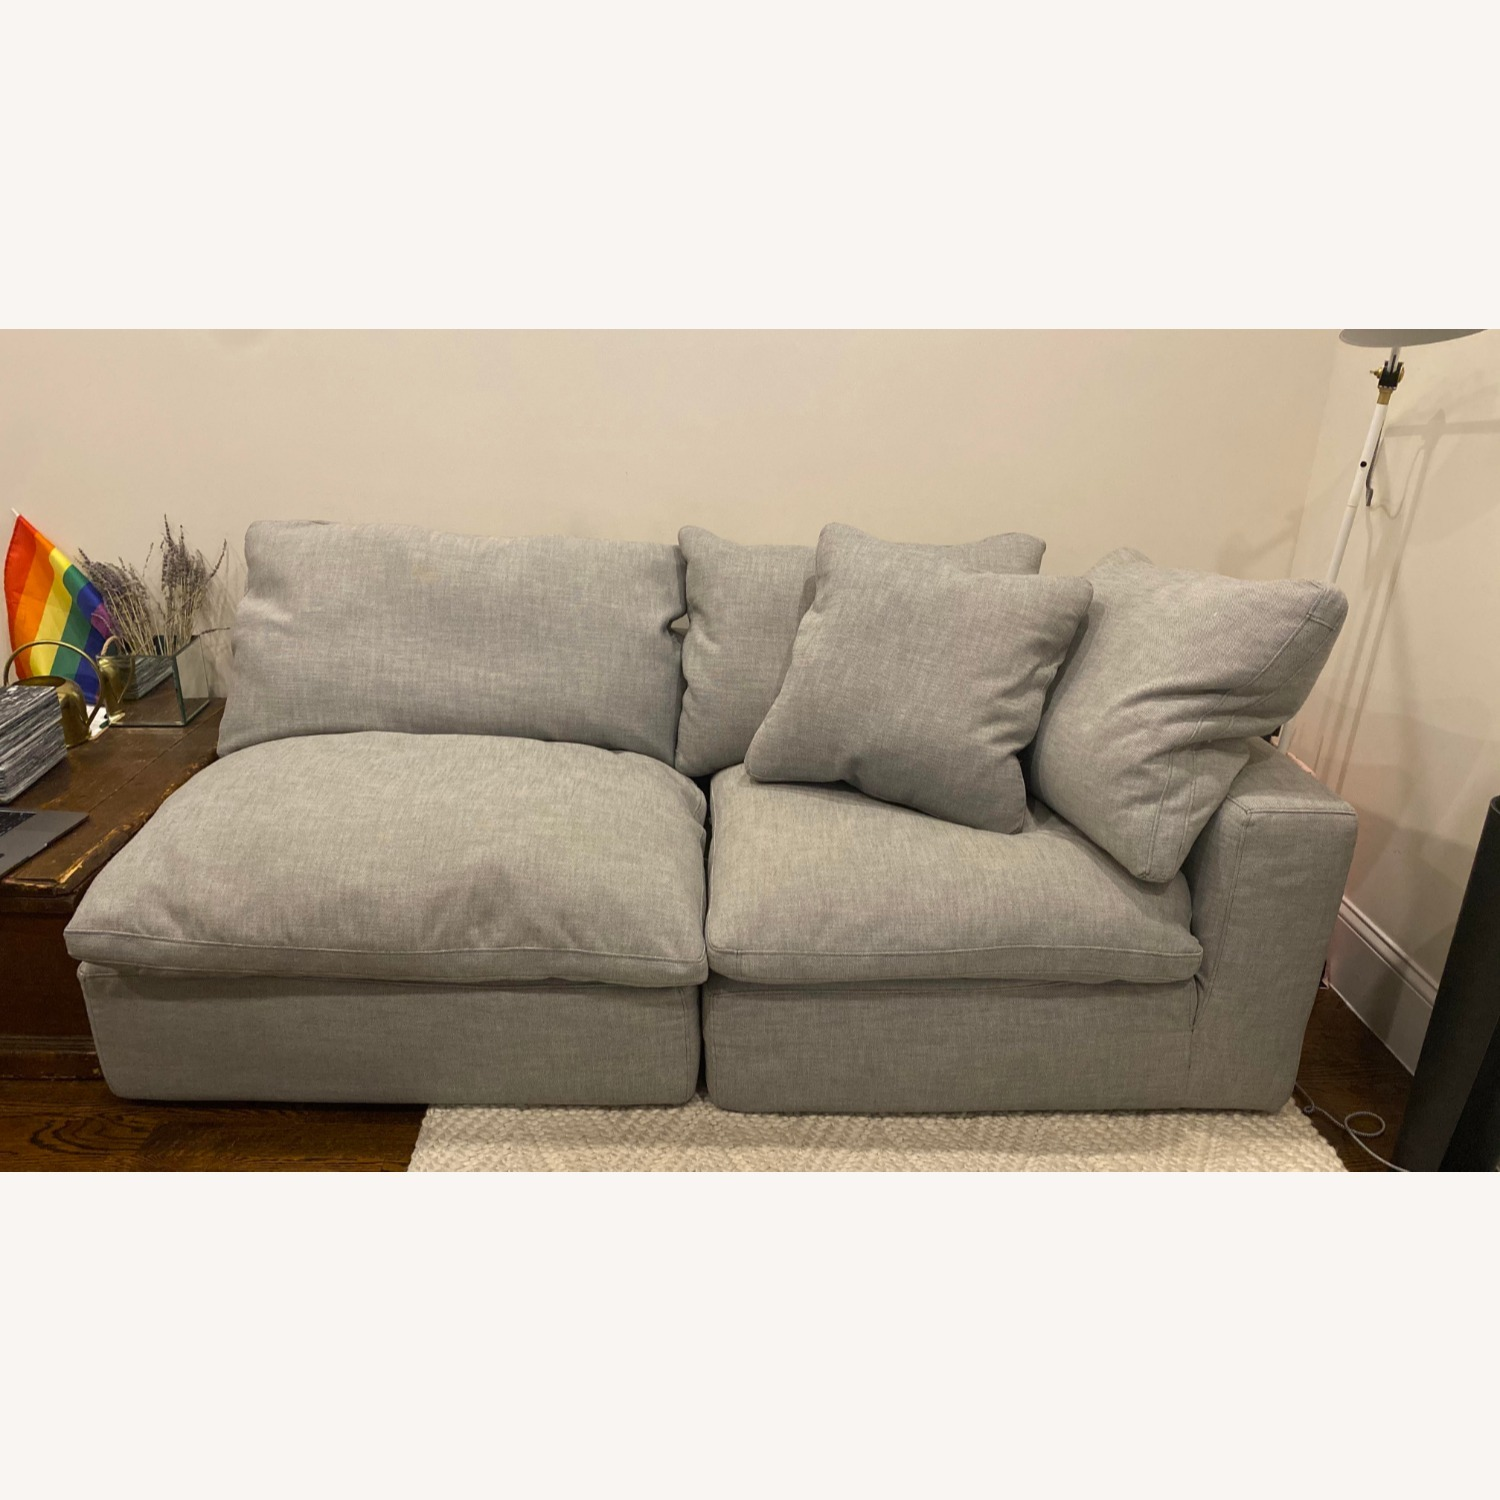 Restoration Hardware Cloud Couch Sectional - image-6